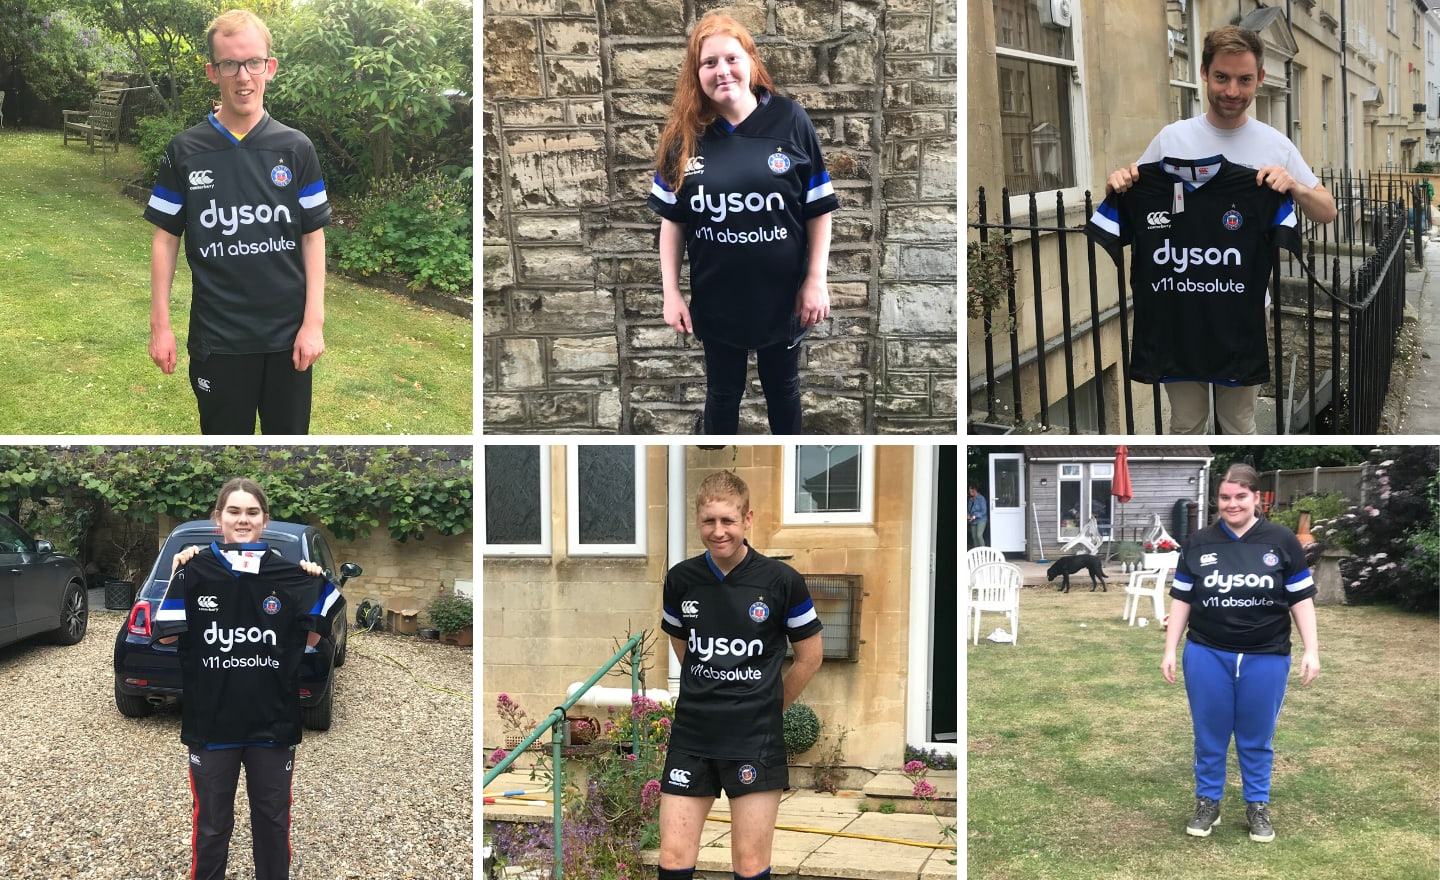 Bath Rugby donate playing kit to Mixed Ability squad after first international rugby tour is cancelled